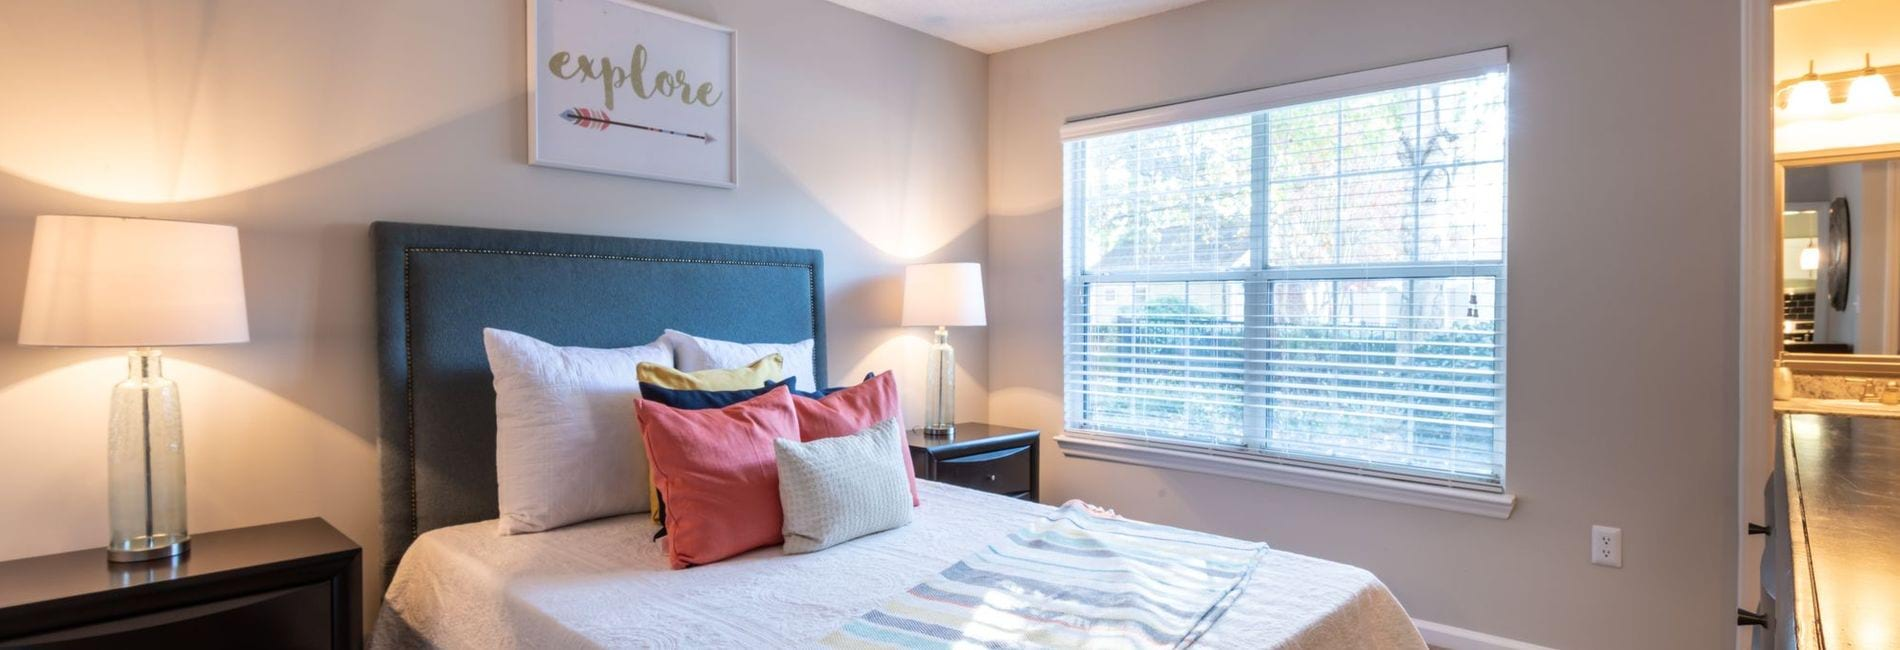 Apartments In North Raleigh Nc Windsor Falls Apartmentsluxury